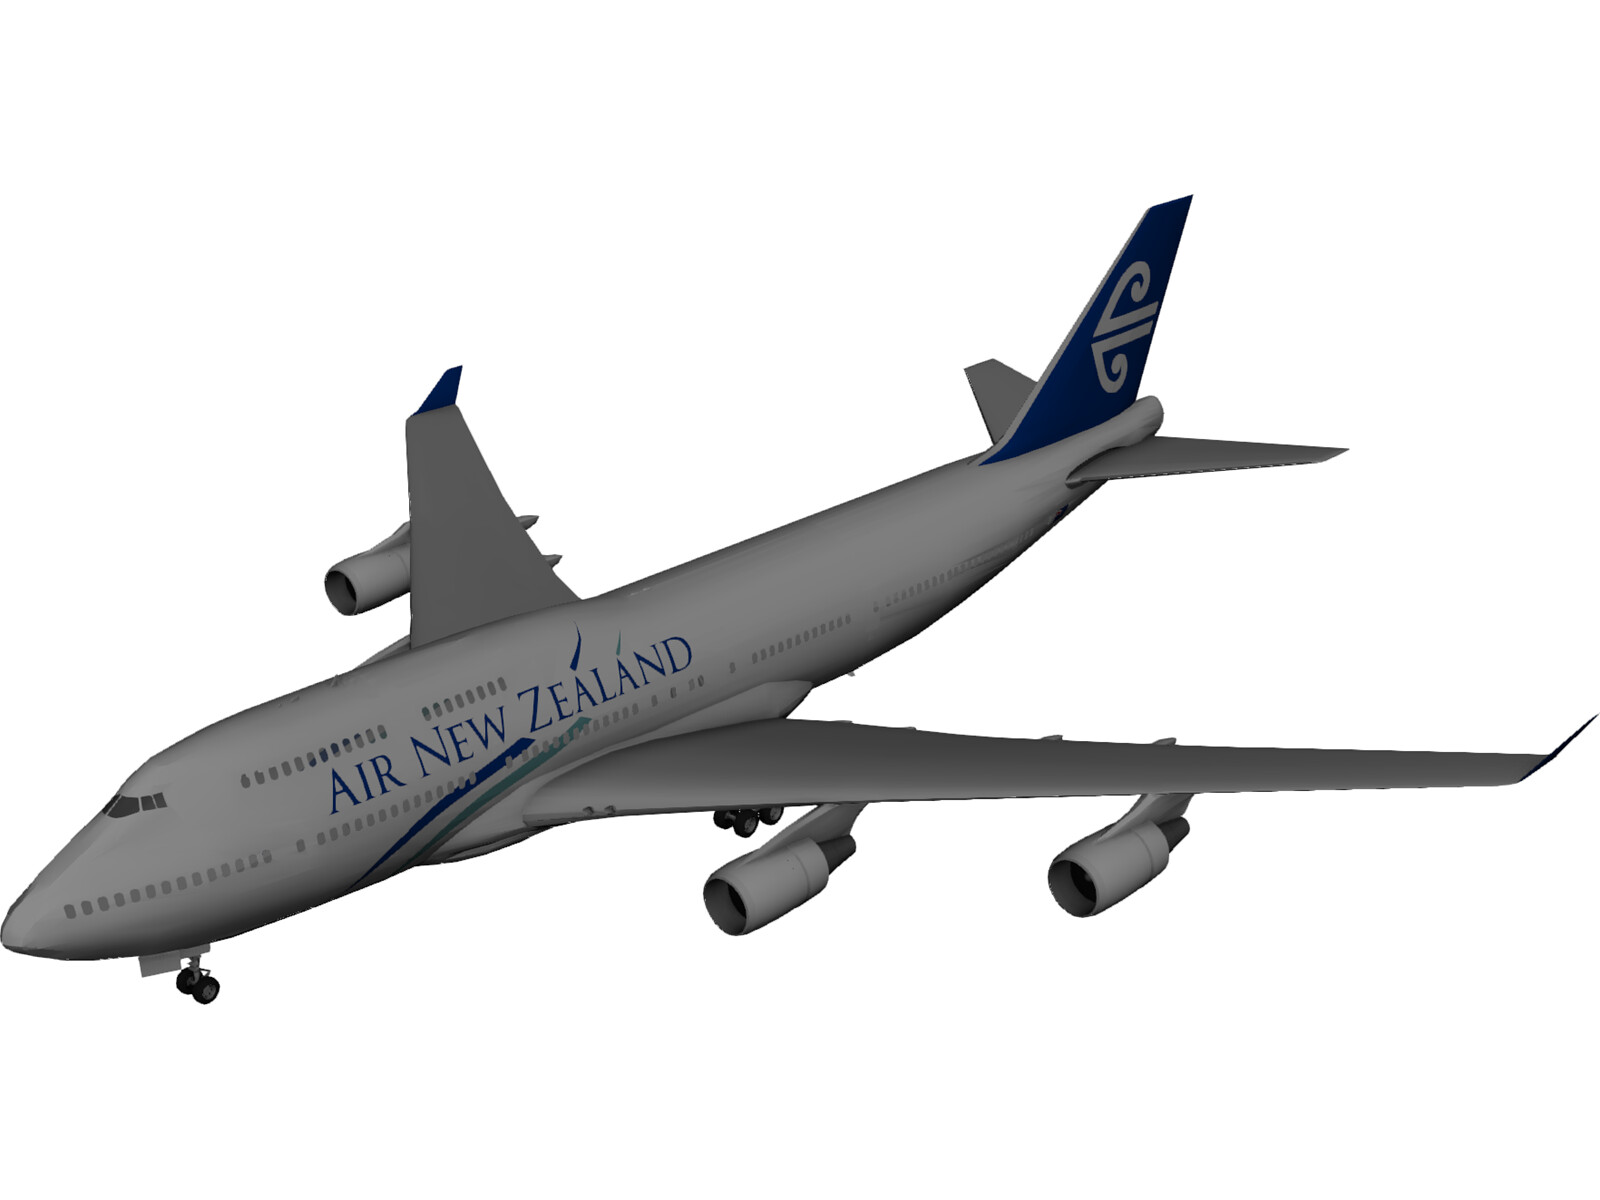 Boeing 747-400 Air New Zealand